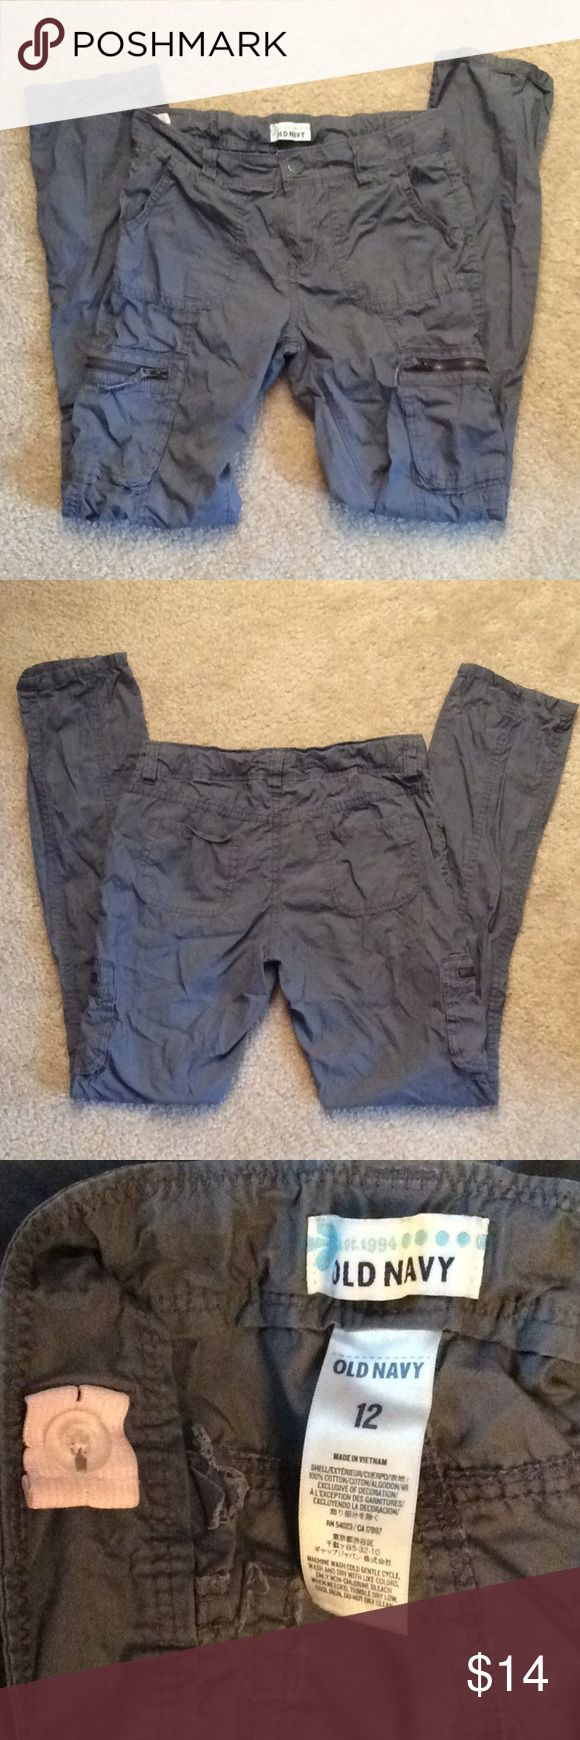 Old Navy gray Girls adjustable waist cargo pants Size 12 Old Navy Bottoms Casual